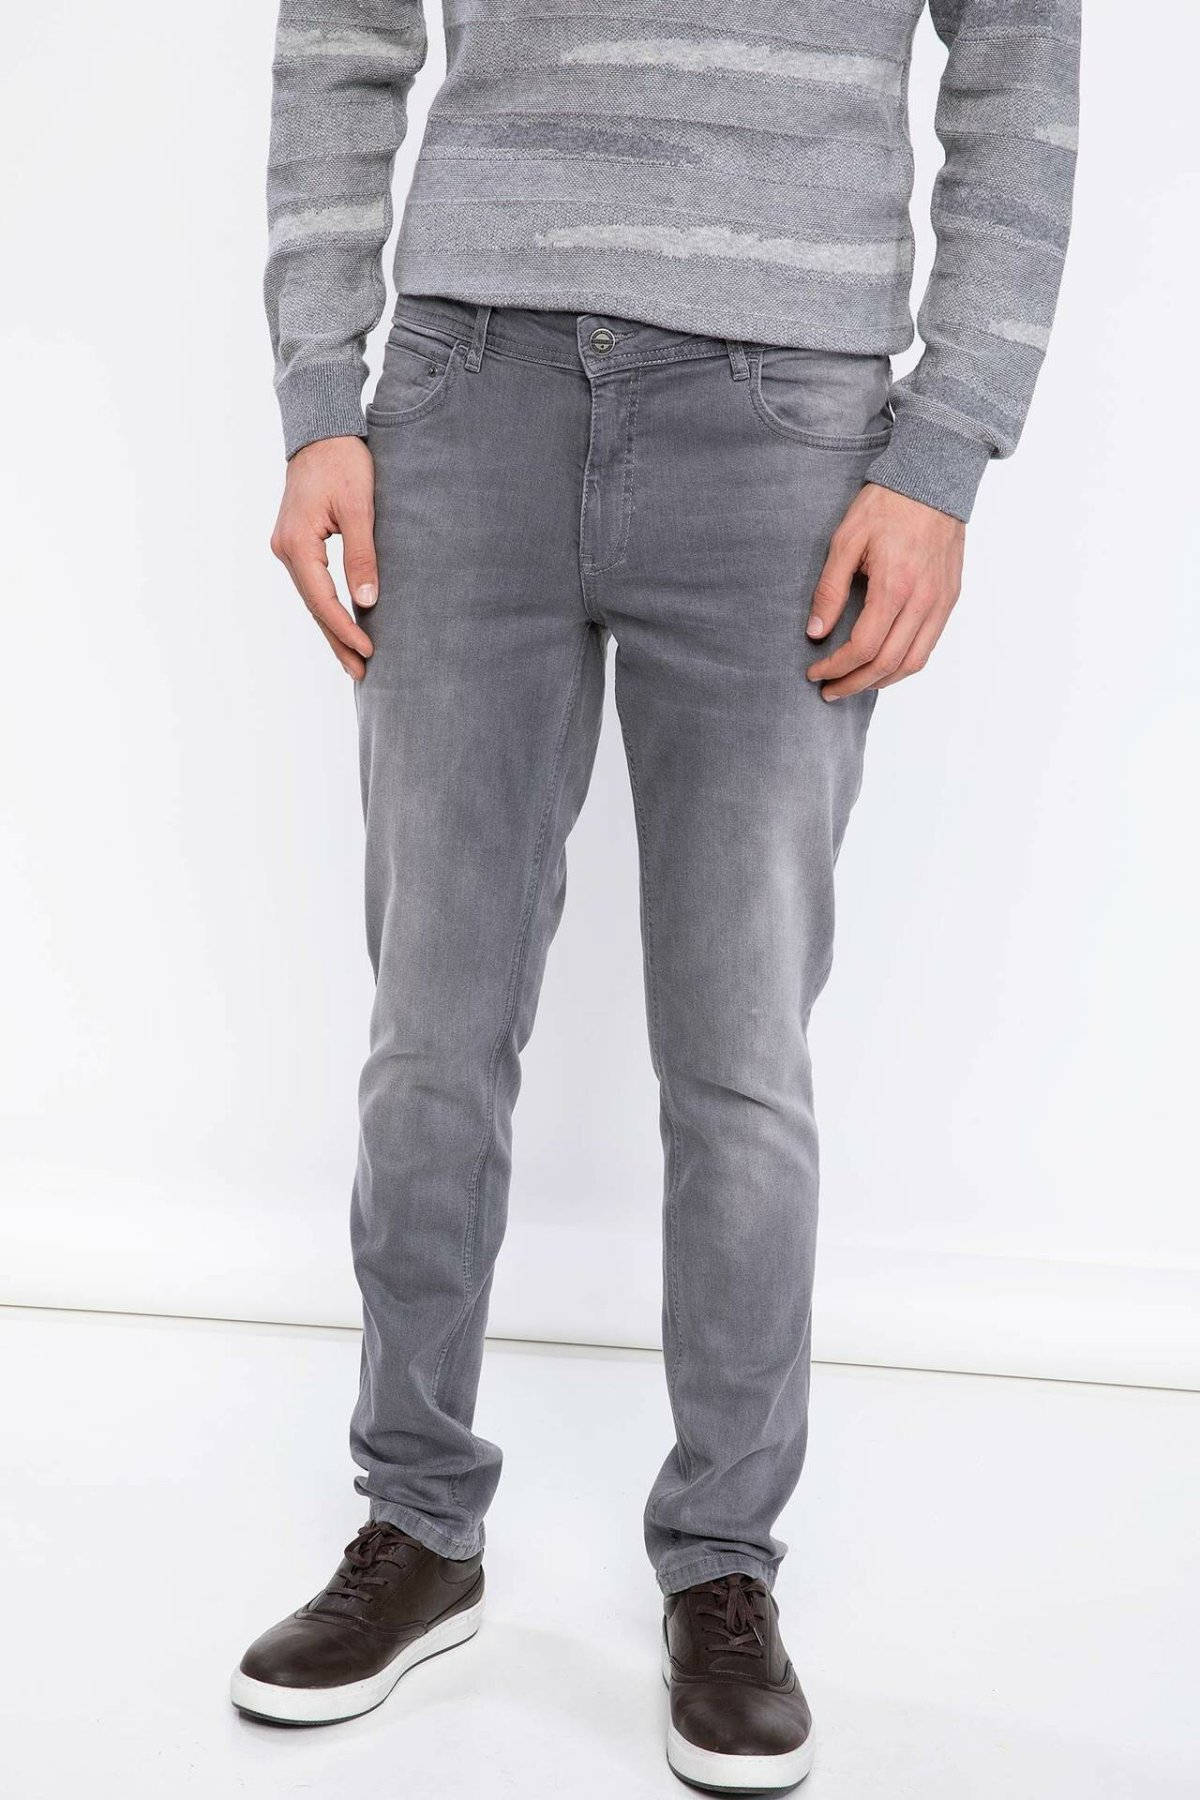 DeFacto Man Light Grey Denim Jeans Men Mid-waist Straight Denim Jeans Casual Long Denim Pants BottomsTrousers-J8747AZ18WN